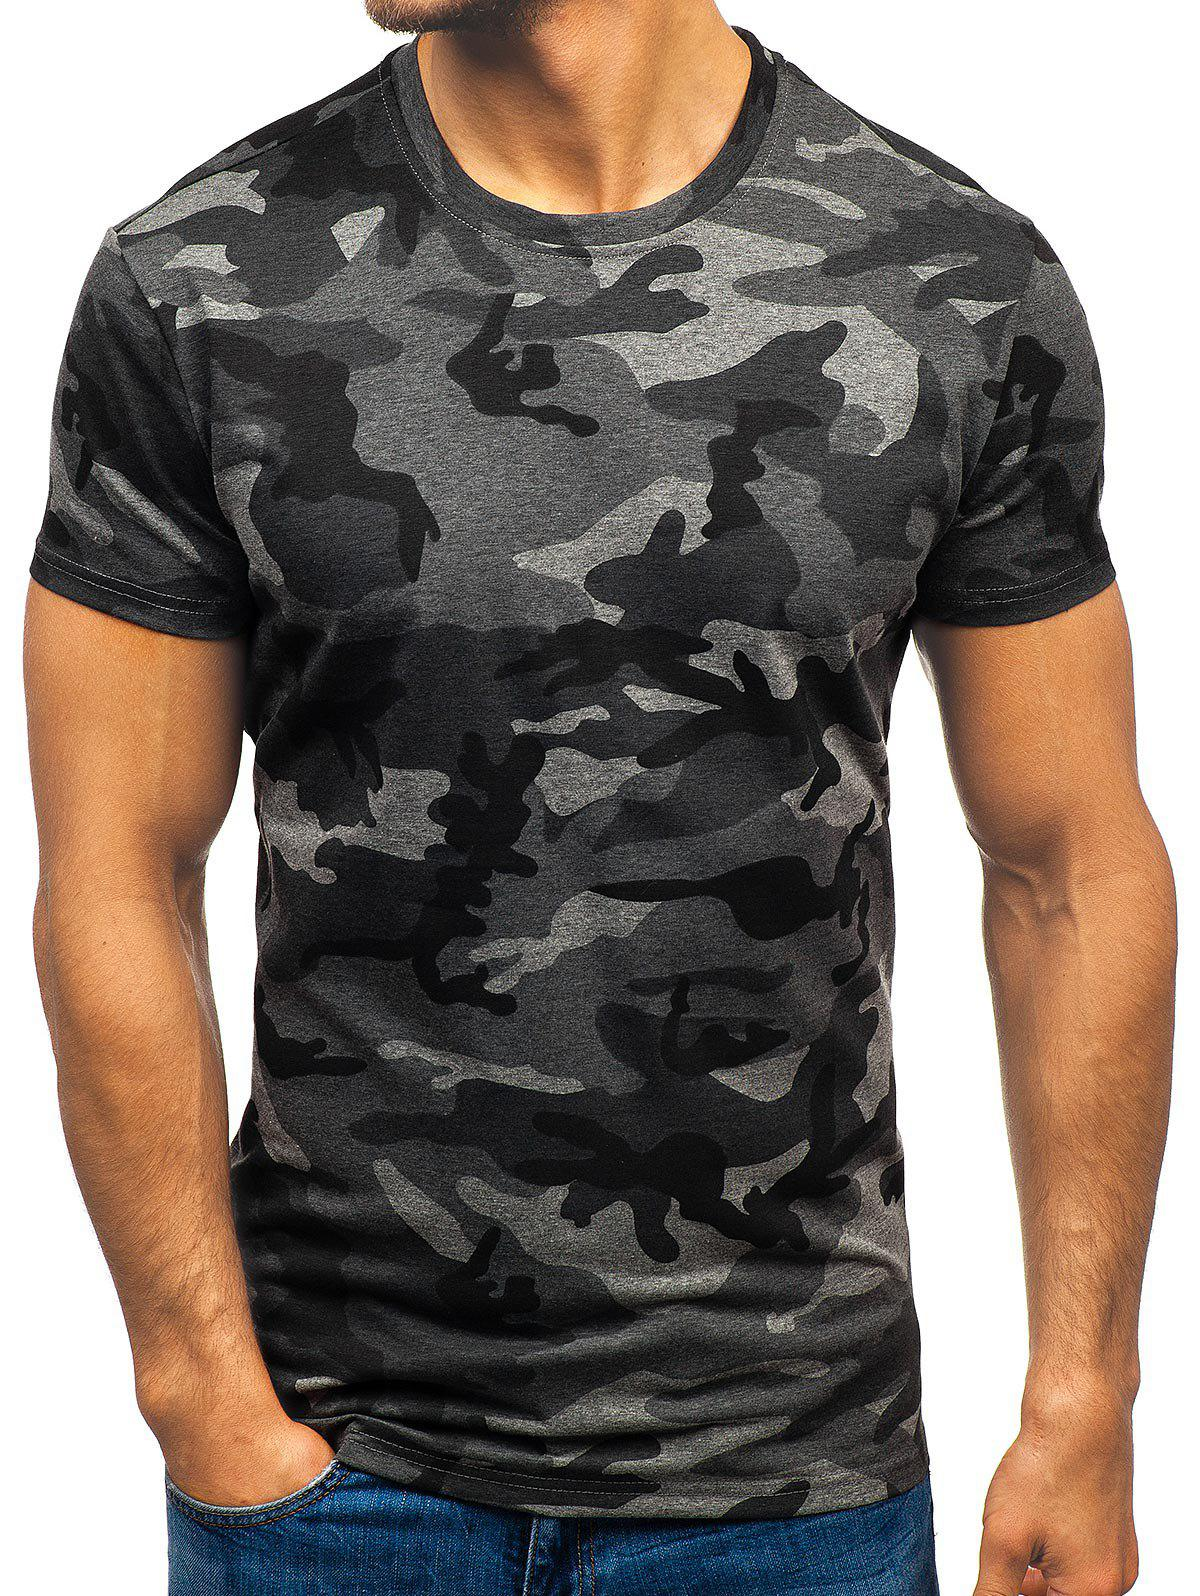 4f2be206 41% OFF] Camouflage Print Crew Neck Tee | Rosegal